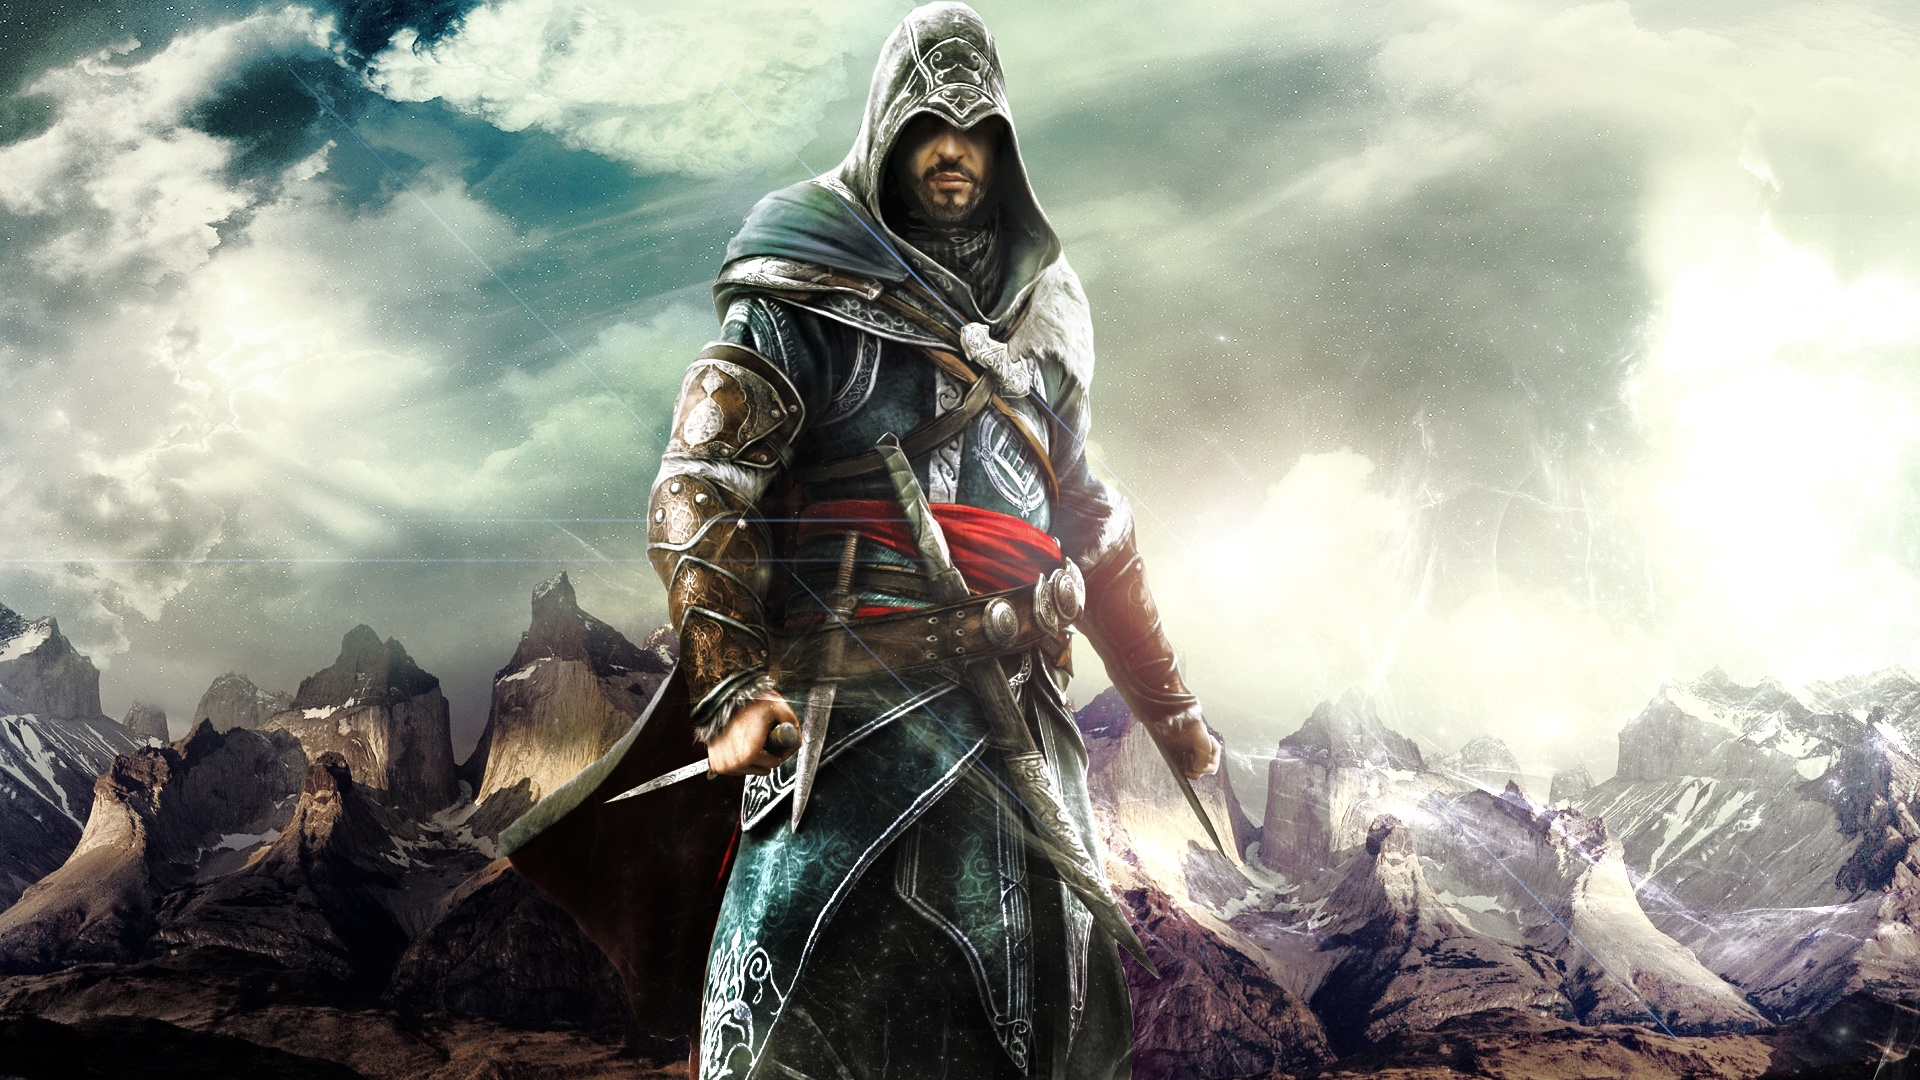 Assassins Creed Revelations Wallpapers HD Wallpapers 1920x1080